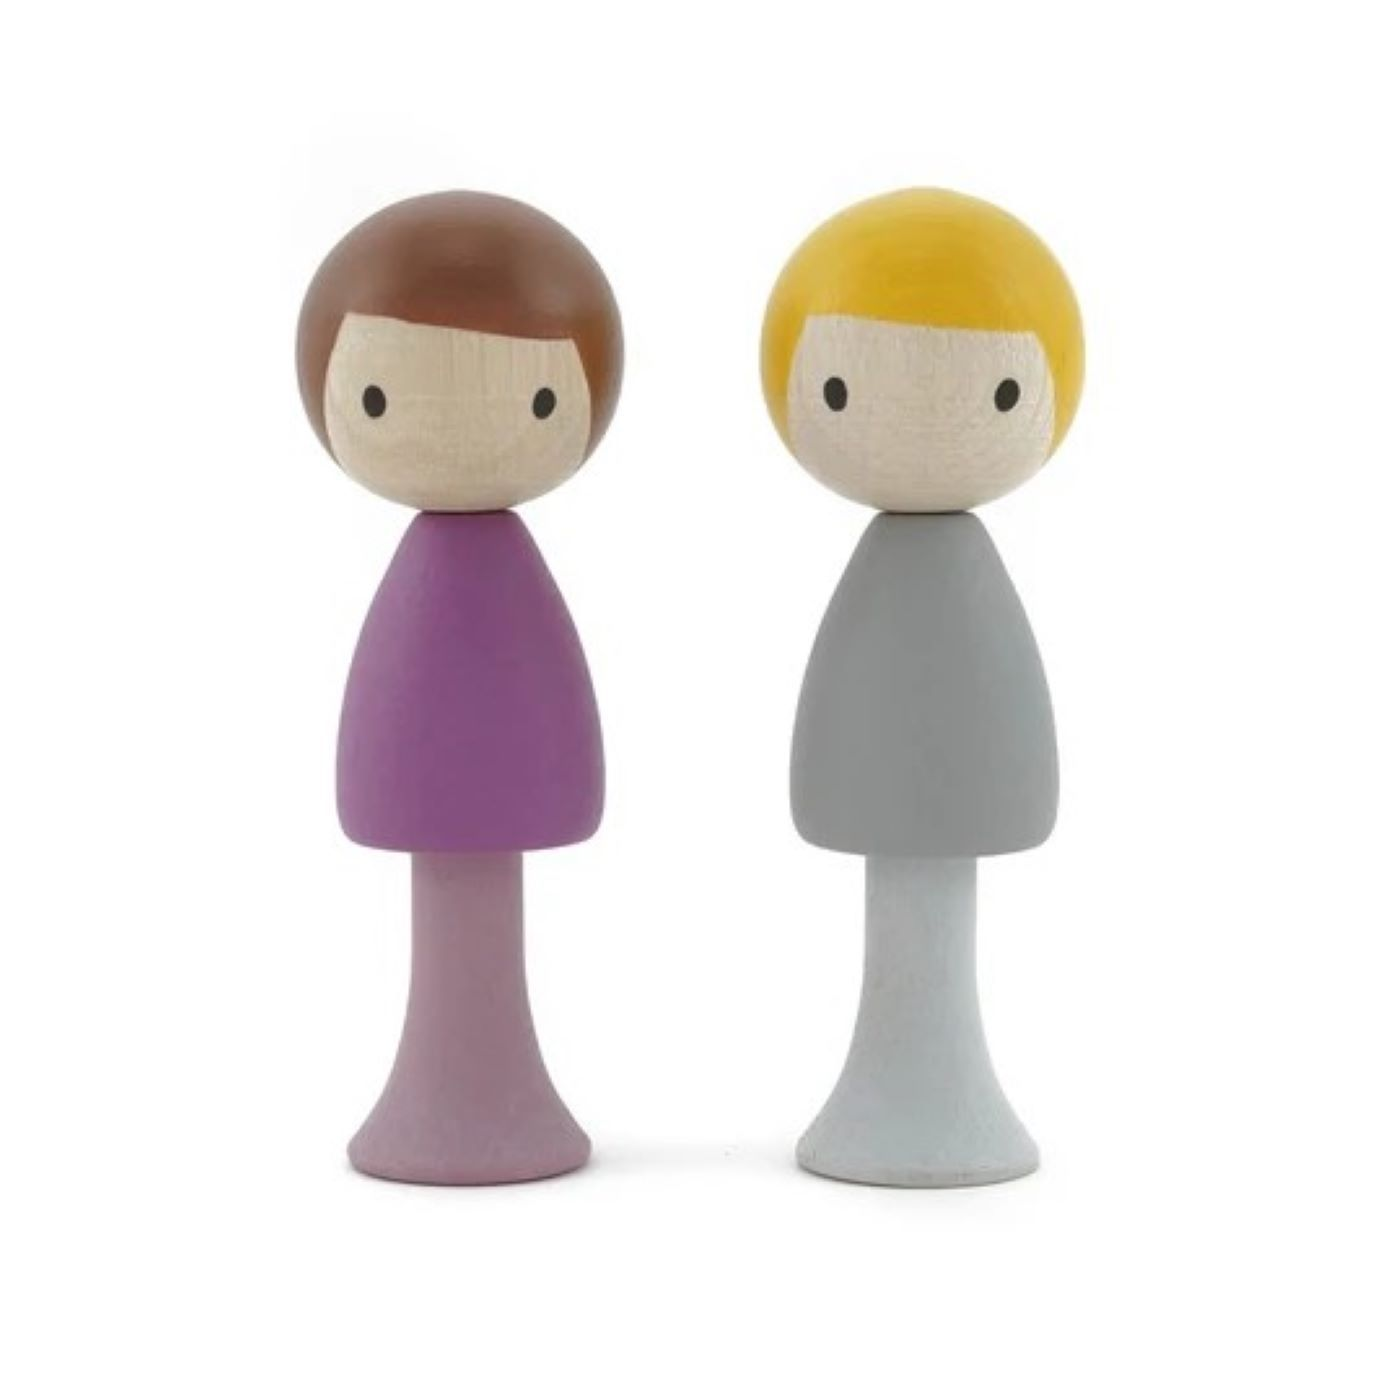 Clicques - Luca and Tom Wooden Figurines